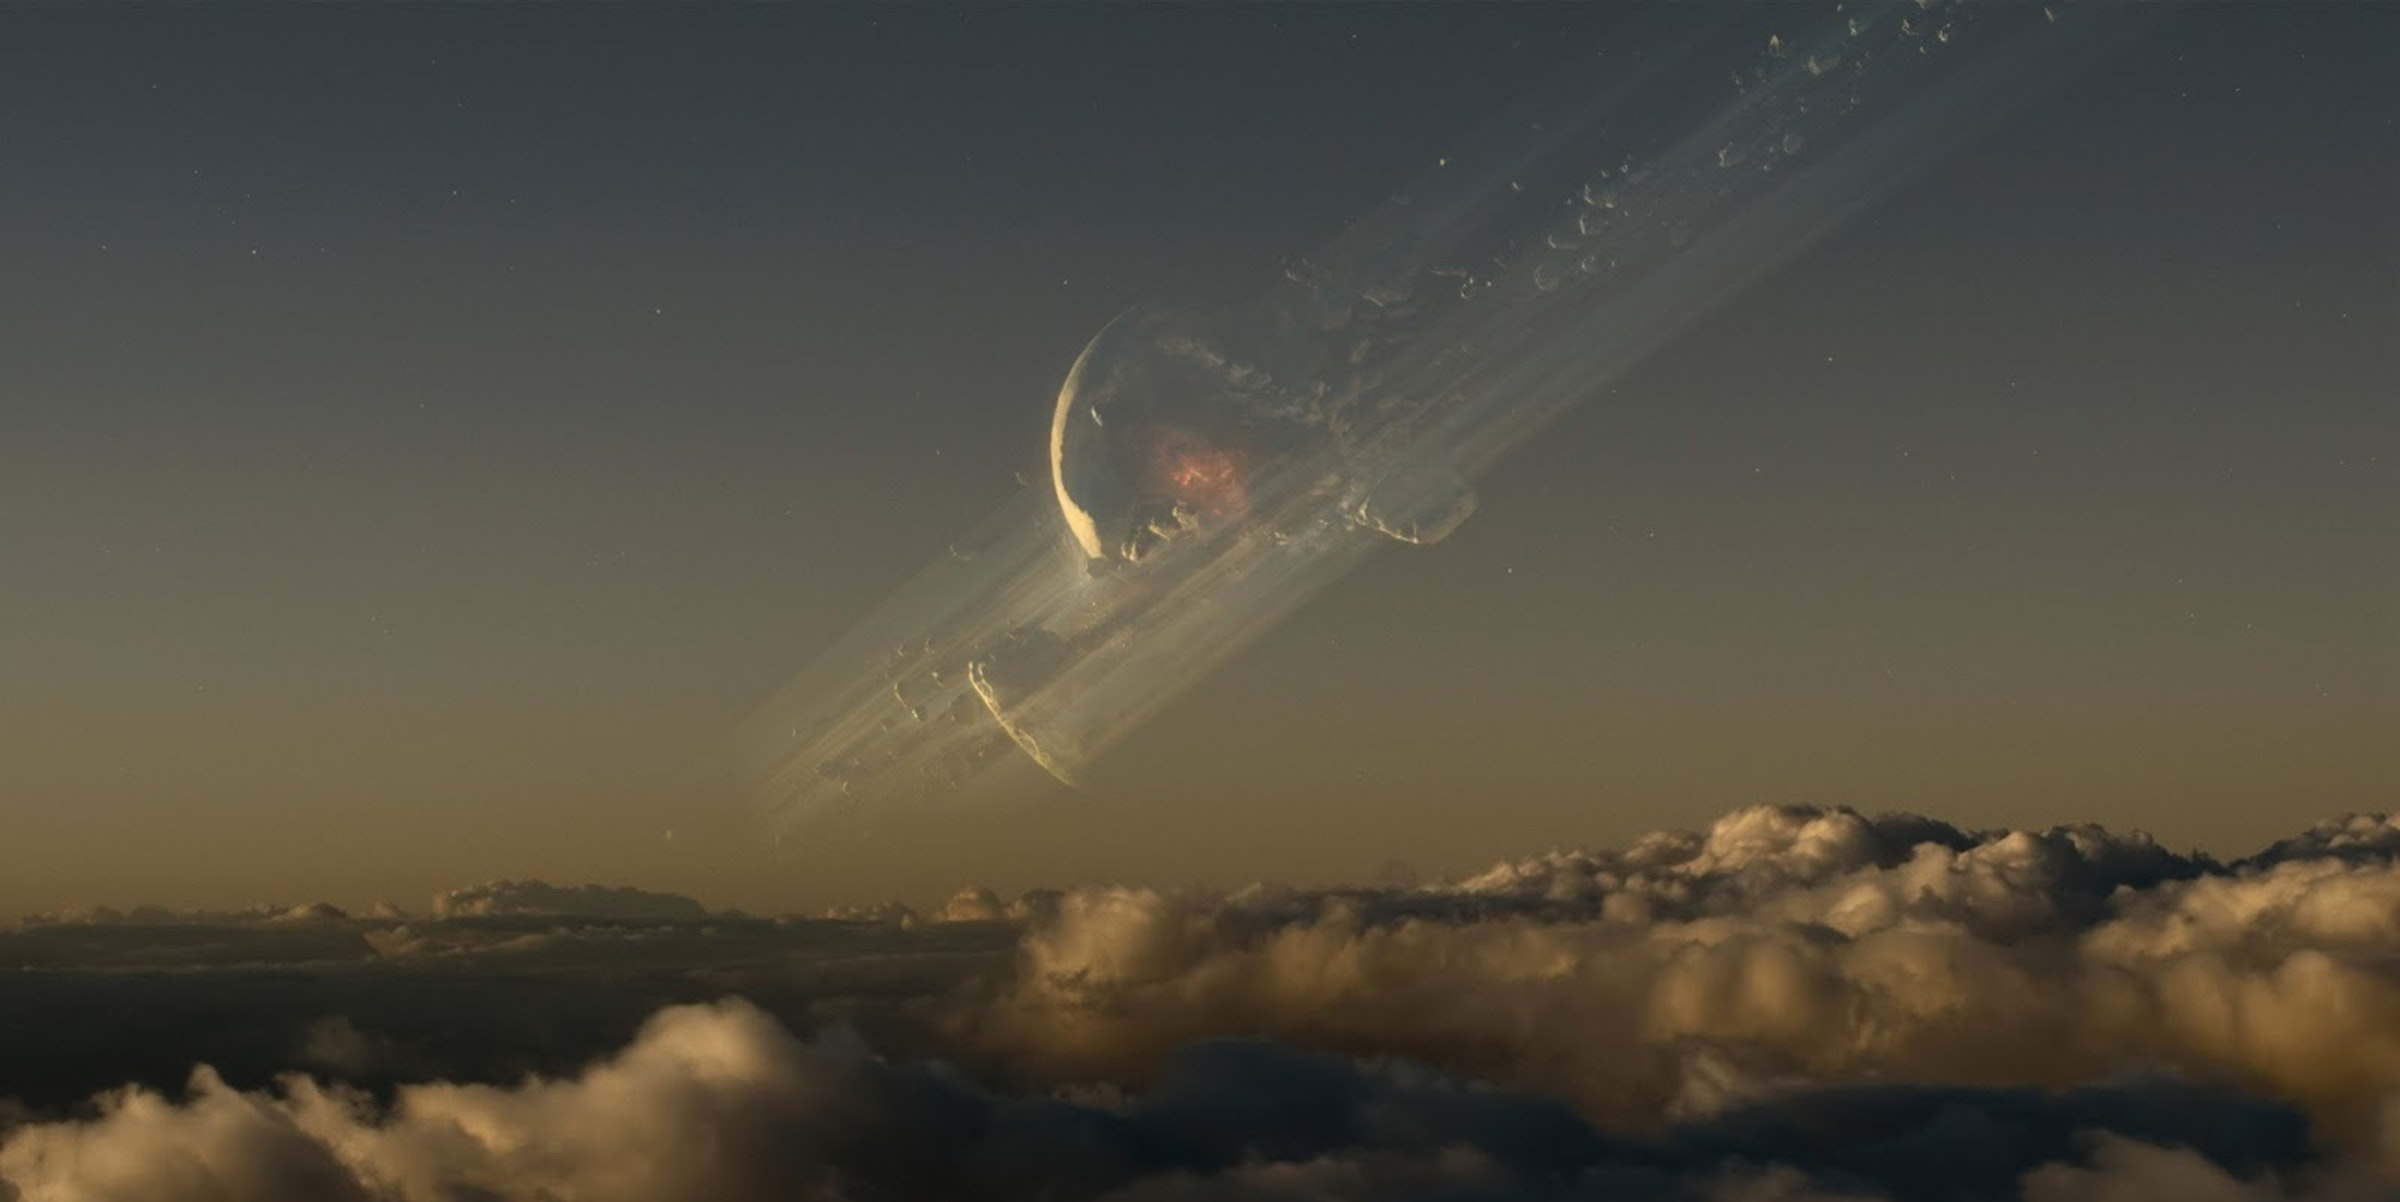 """A still from the movie """"Oblivion,"""" depicting a shattered moon."""